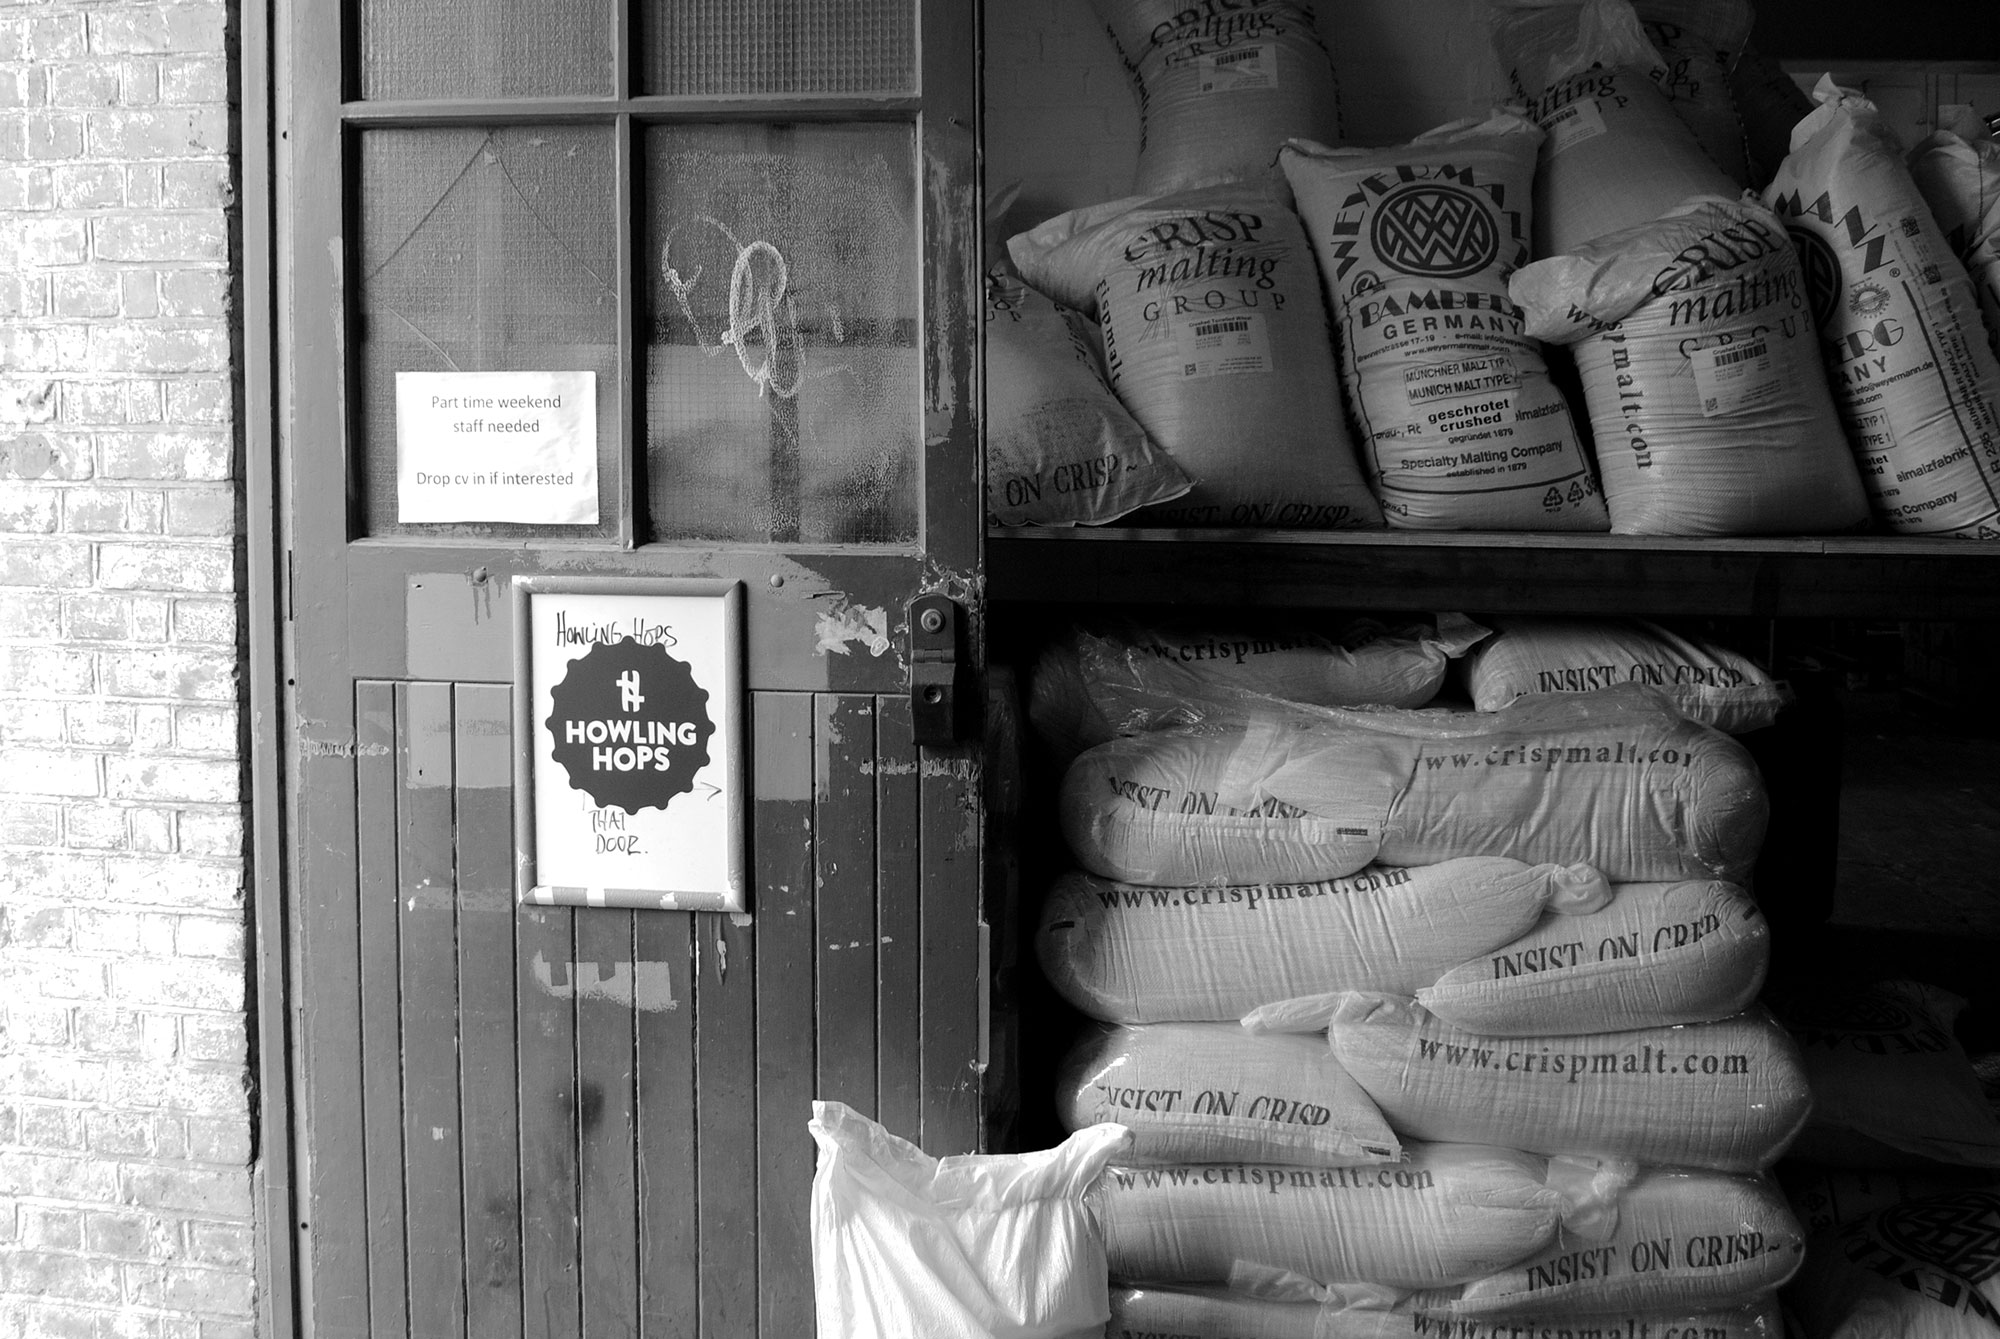 A stack of malt bags sit waiting at London's Howling Hops. Photo by Jack Muldowney.